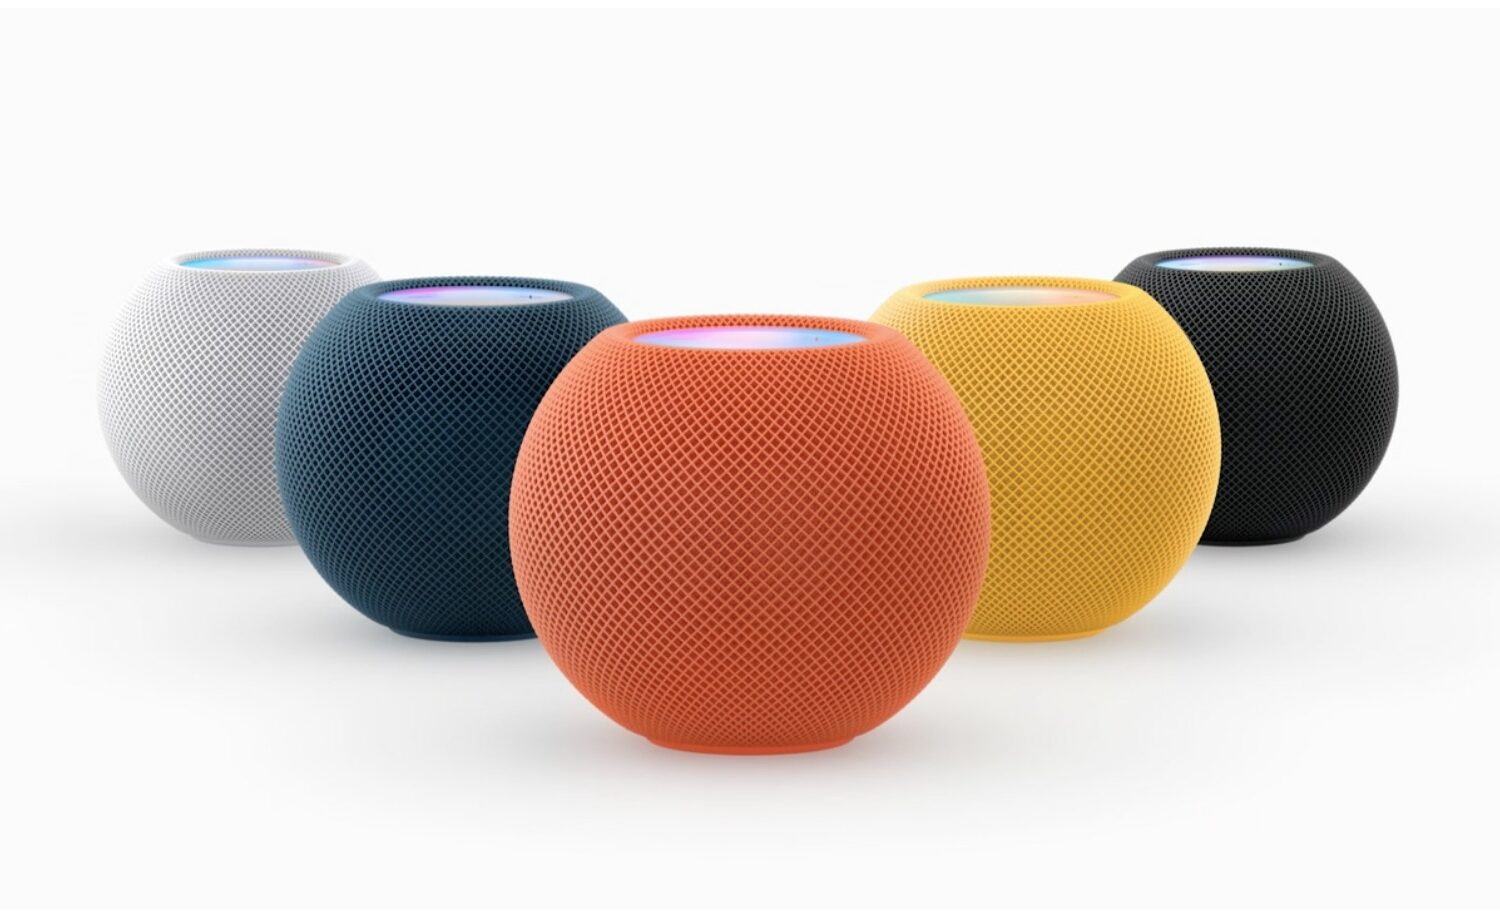 Apple\s marketing image showing the colorful HomePod mini models. HomePod mini is currently limited to lossless audio, lacking support for spatial audio